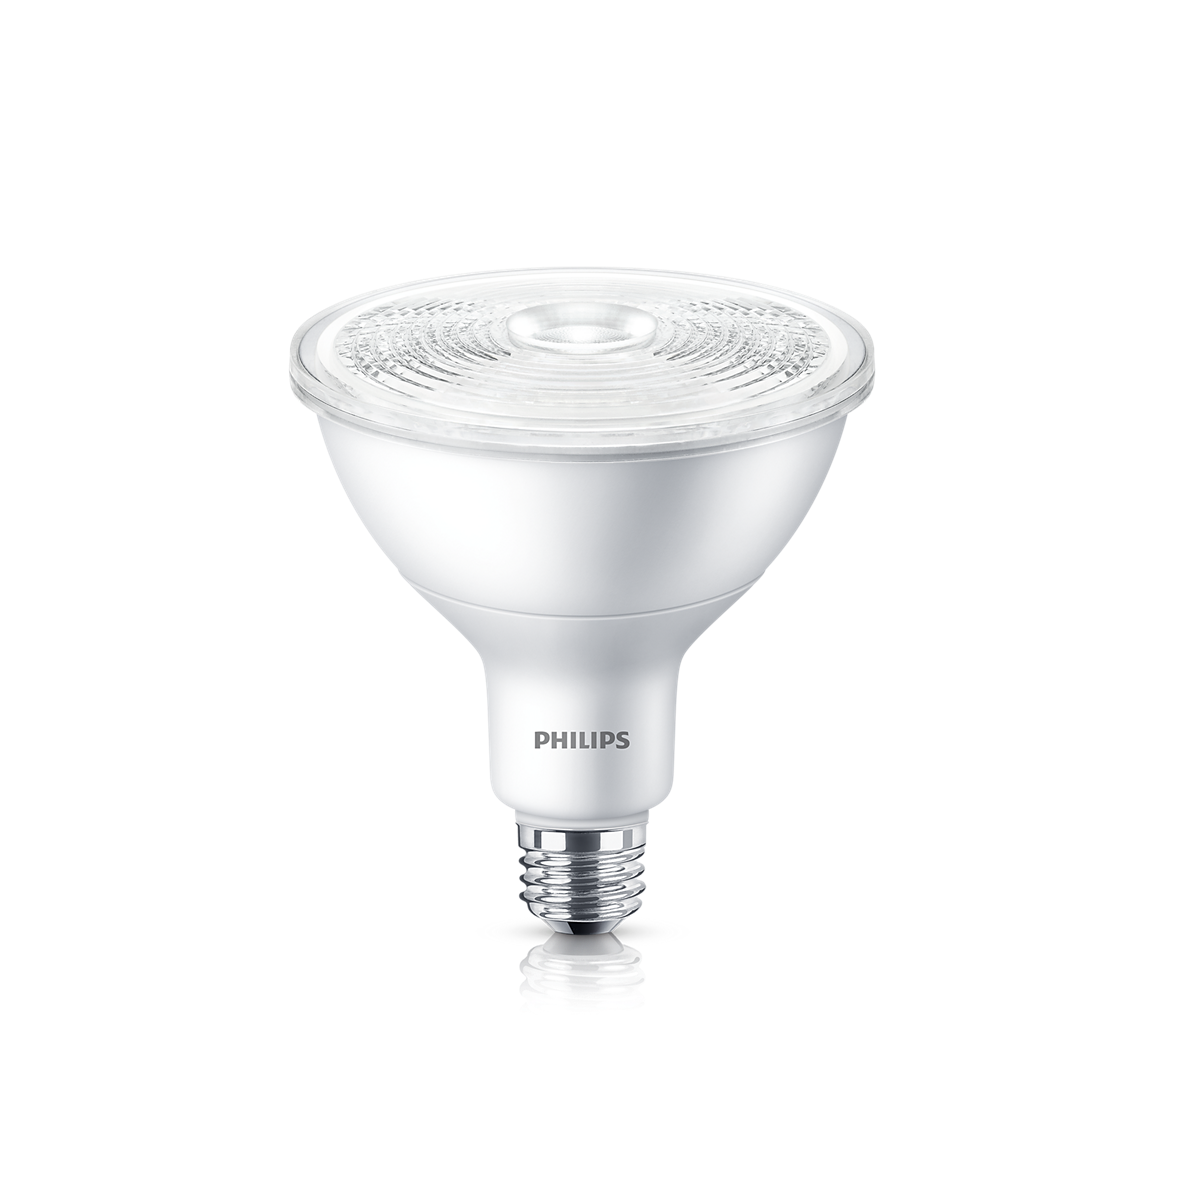 LED PAR38 PAR38 spots Philips LED iPuOkXZ